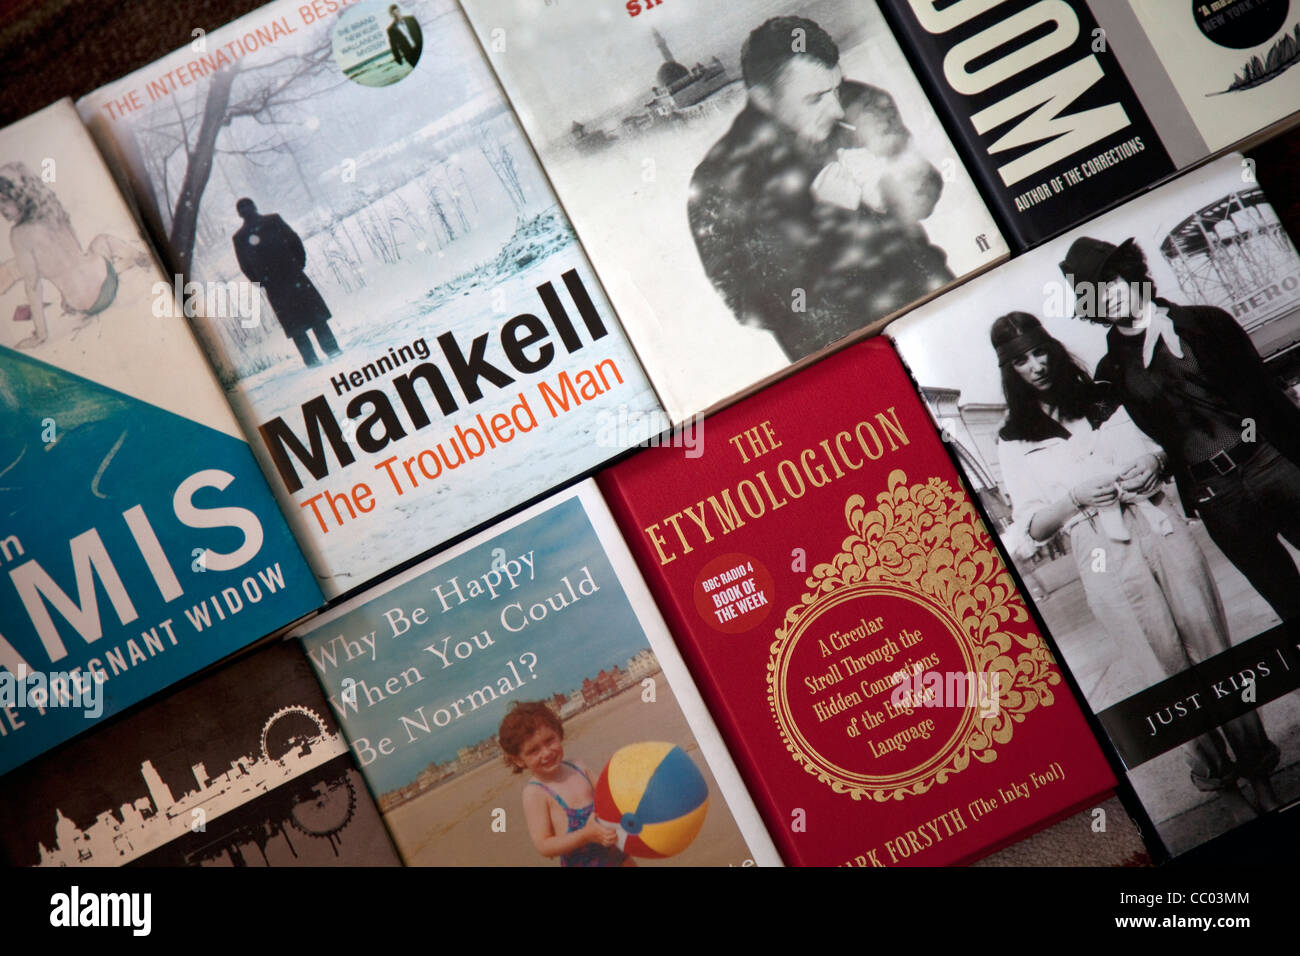 Physical book cover designs have become more important since the advent of e-books. - Stock Image